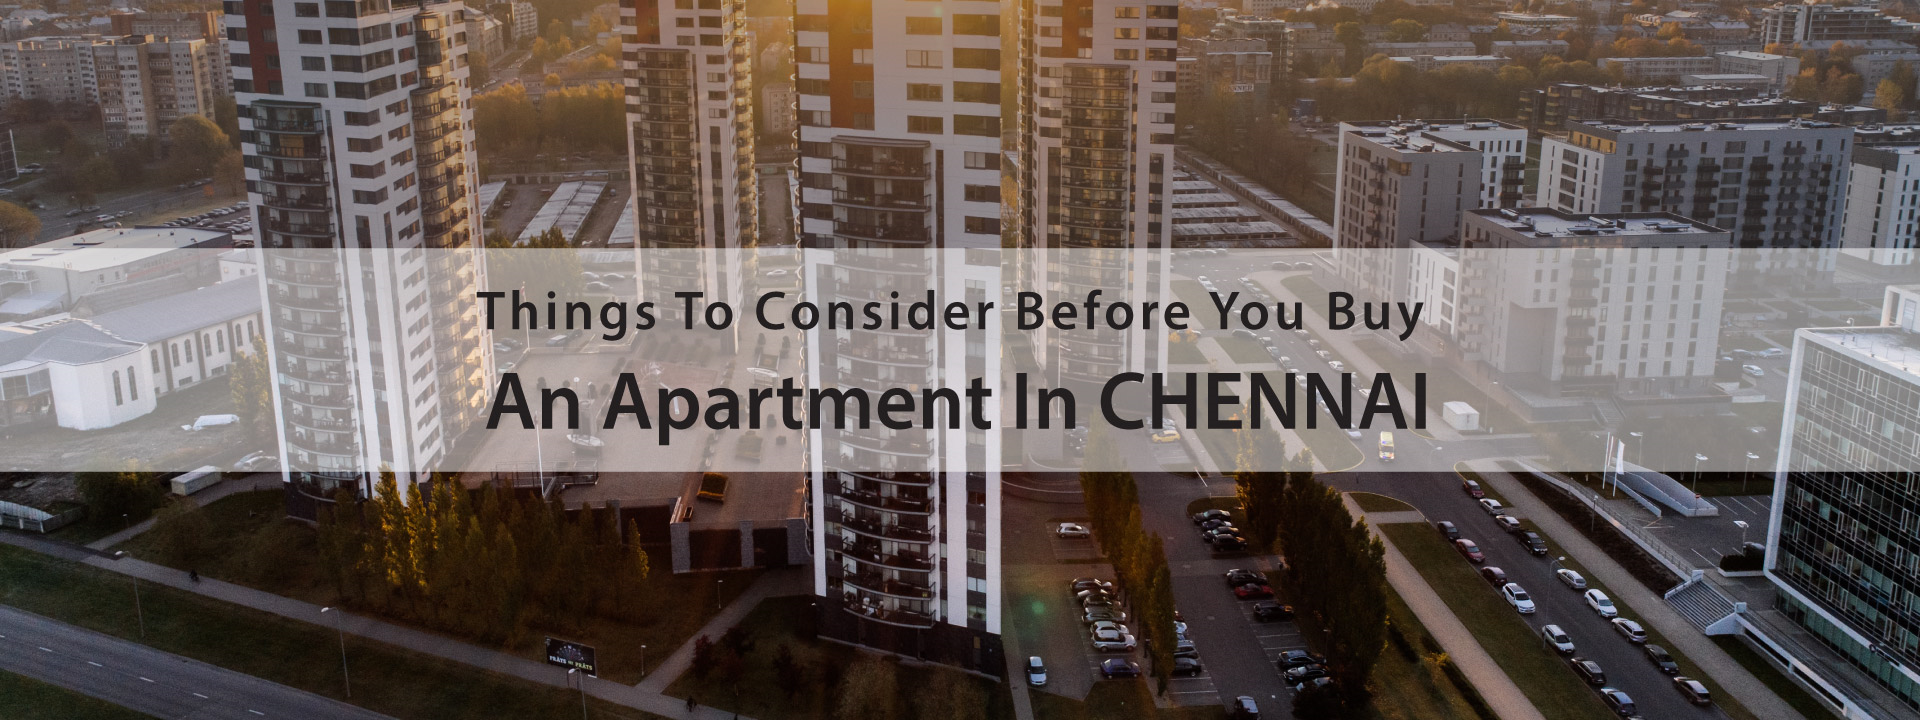 Things To Consider Before You Buy An Apartment In Chennai